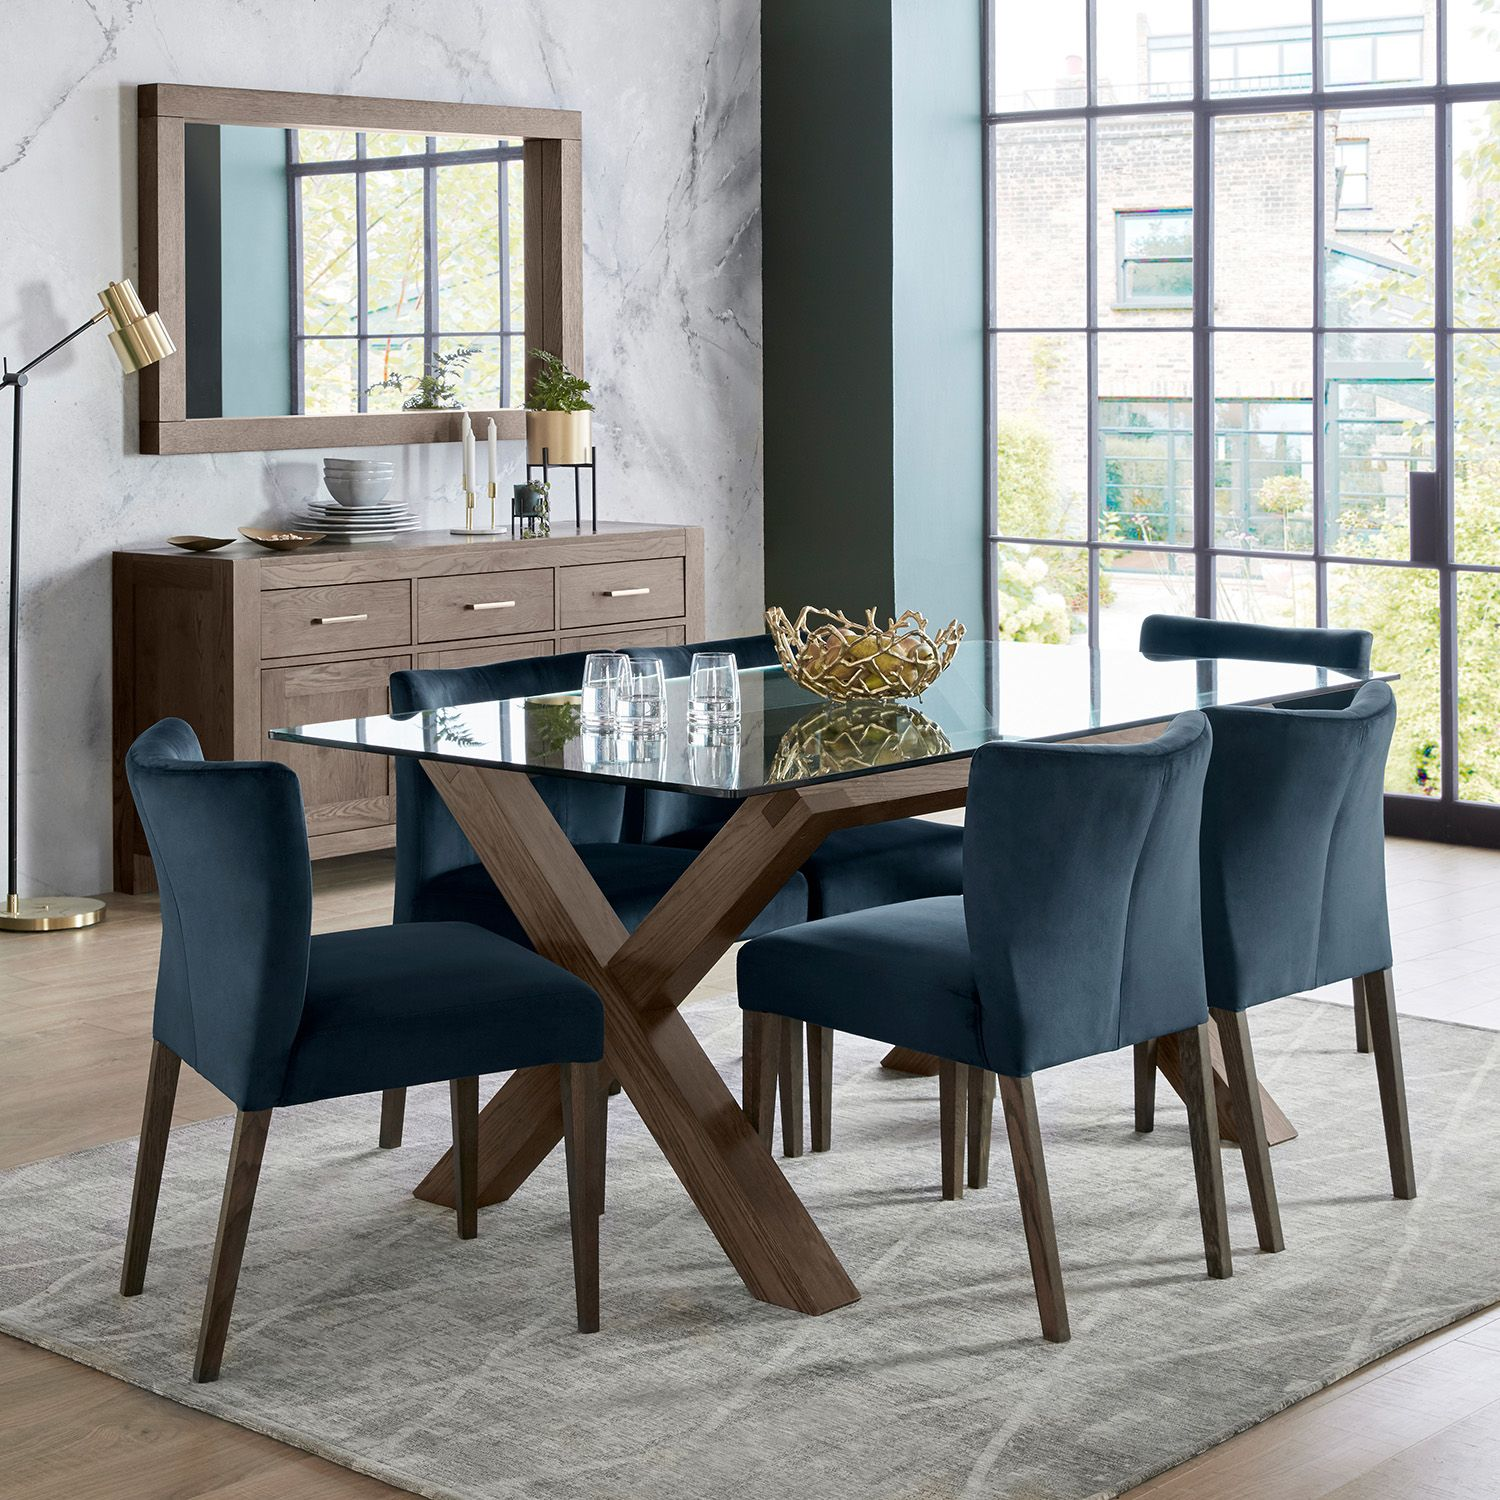 Dining Set Turin Indoor Furniture Modern Dining Modern Dining Room